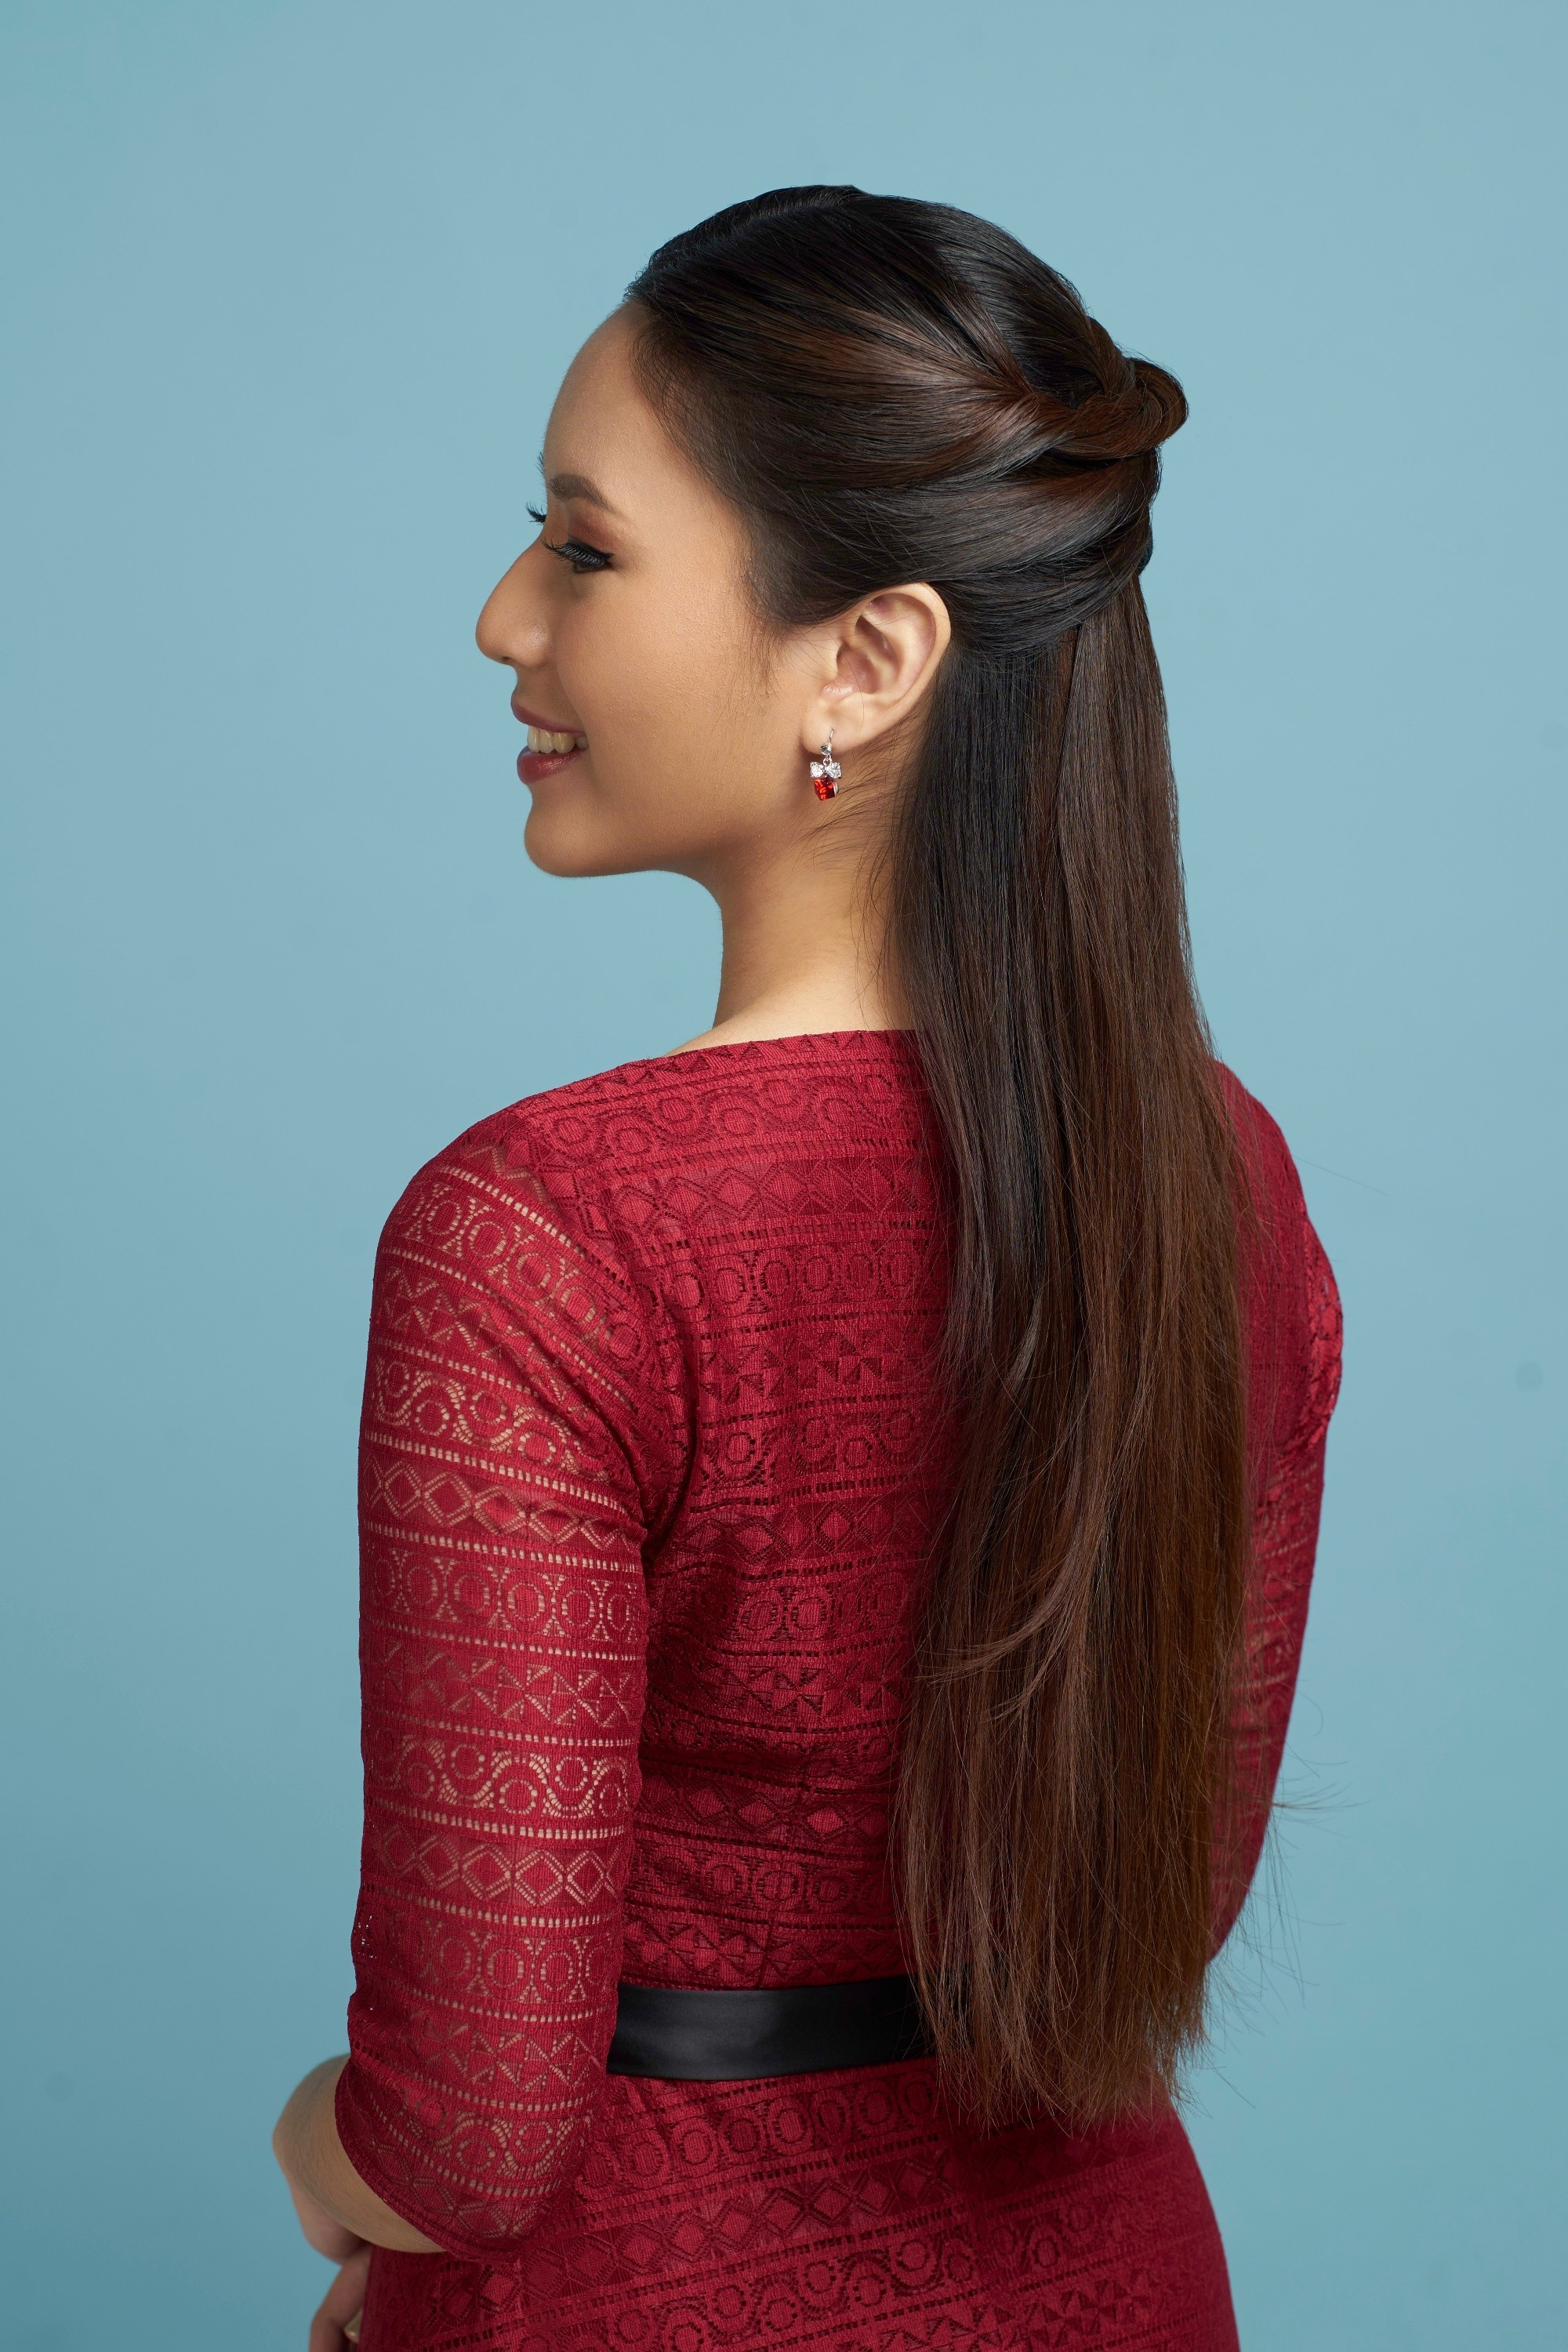 Half ponytail: Back shot of an Asian woman with long dark hair in half up criss cross hairstyle